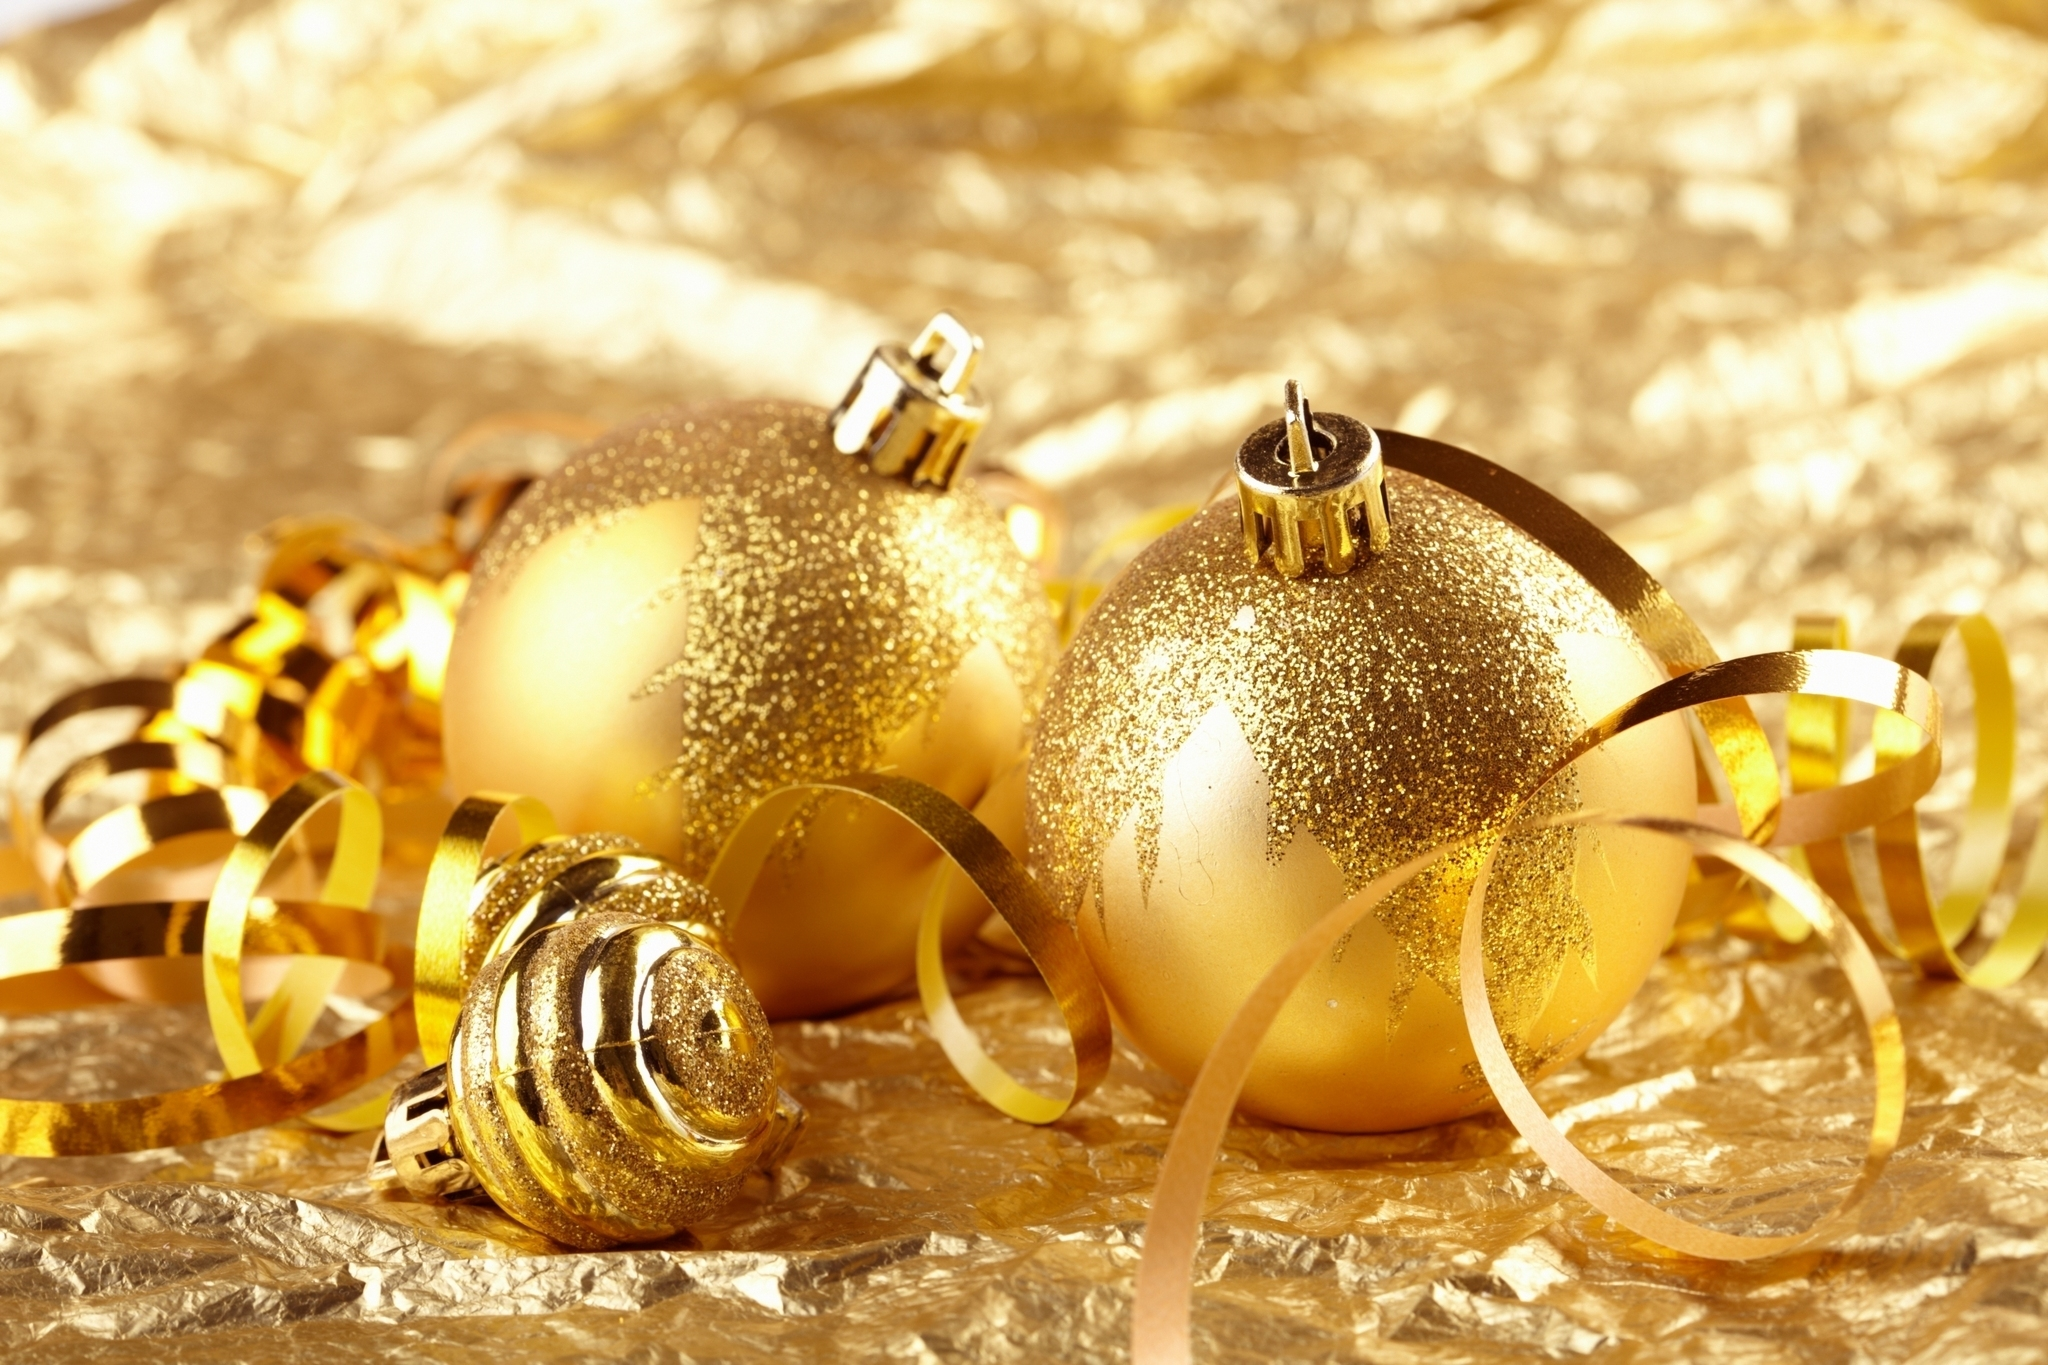 christmas images golden christmas decorations hd wallpaper and background photos - Gold Christmas Decorations